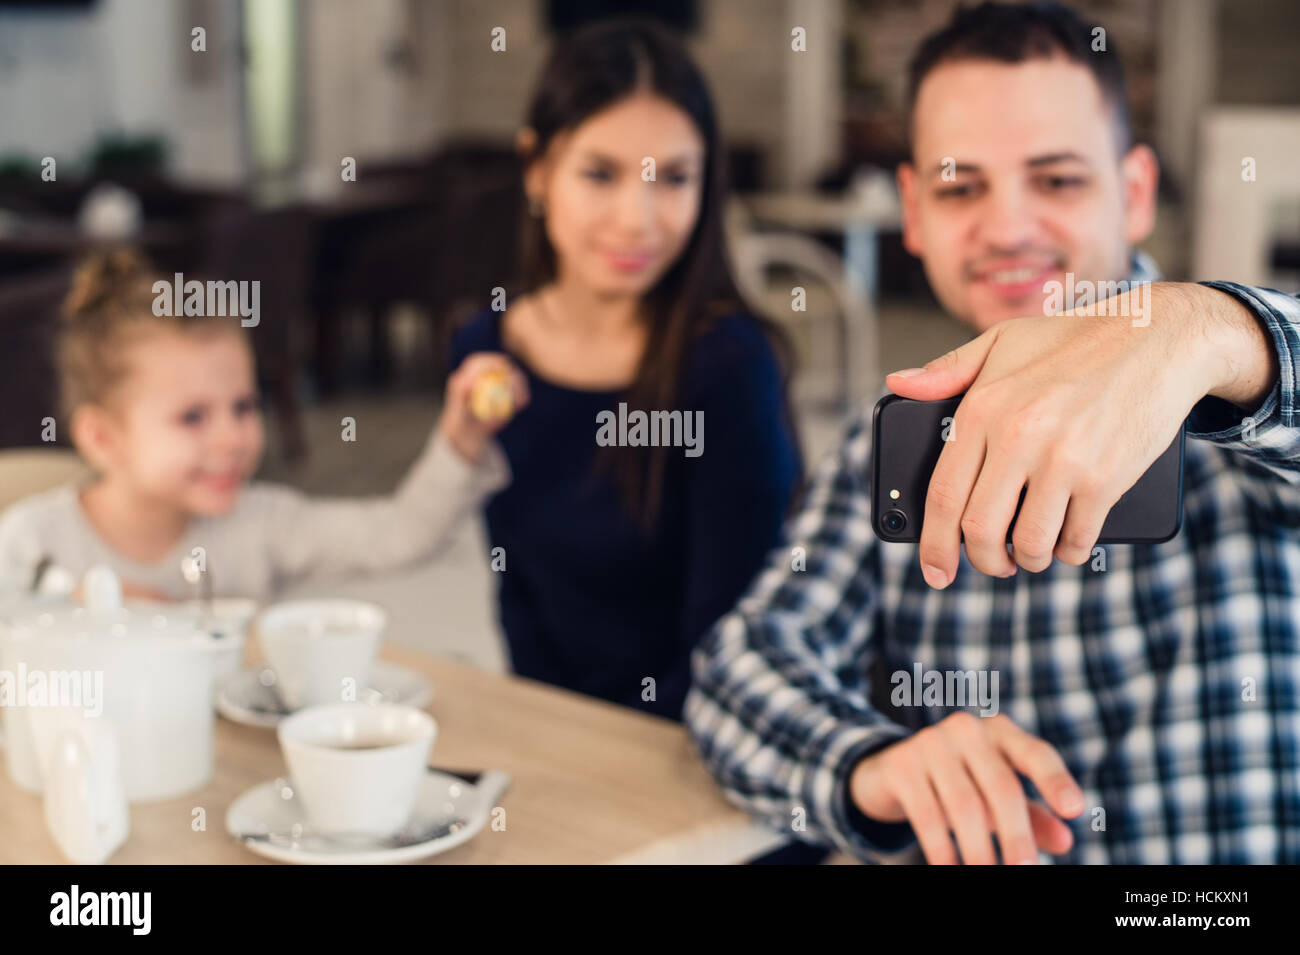 family, parenthood, technology people concept - happy mother, father and little girl having dinner taking selfie - Stock Image